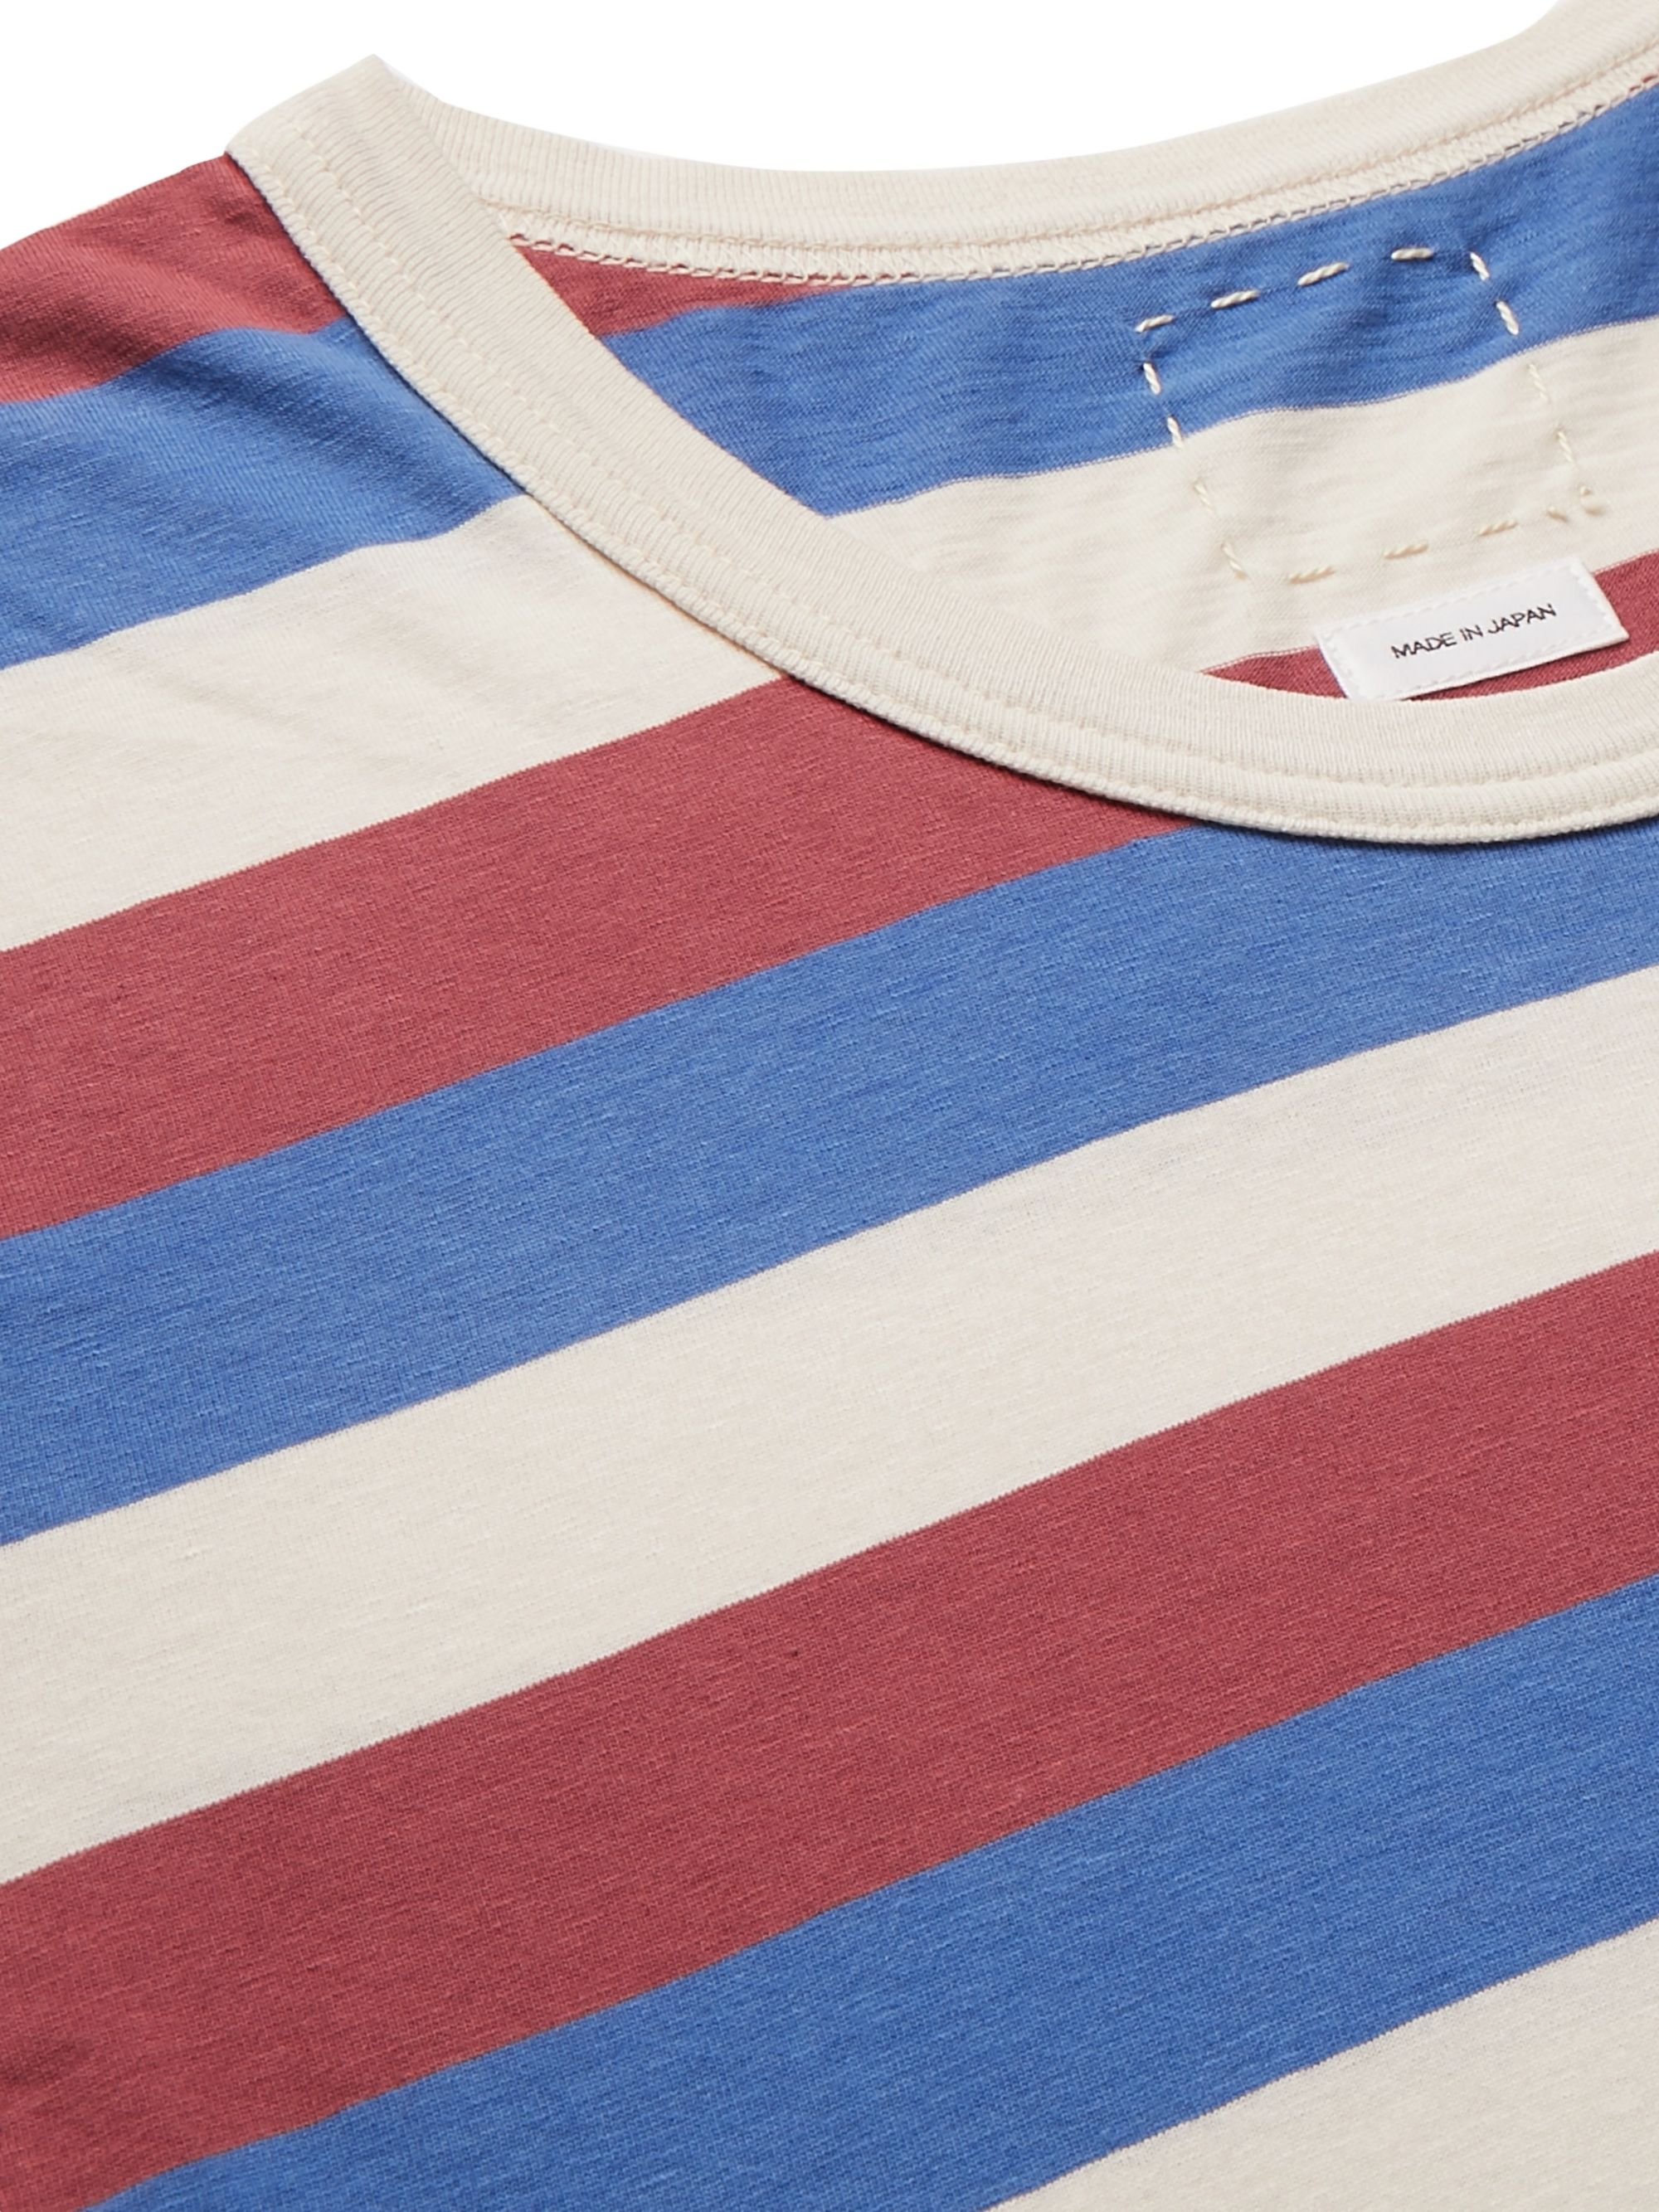 visvim Striped Cotton-Jersey T-Shirt